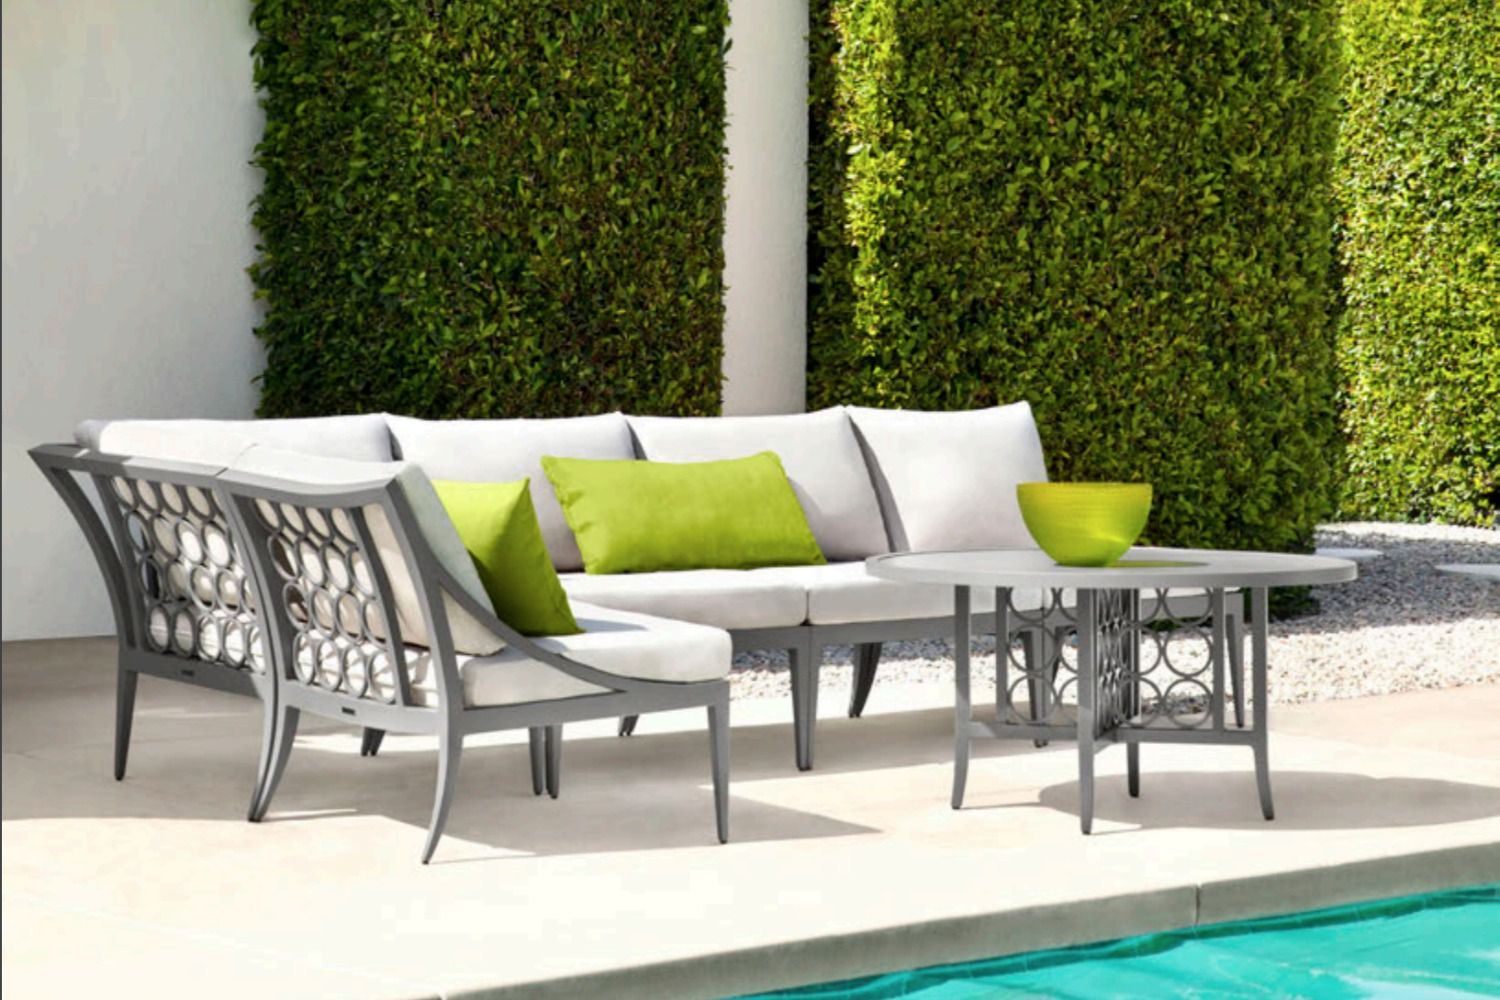 Best Patio Furniture The Best Outdoor Patio Furniture Brands